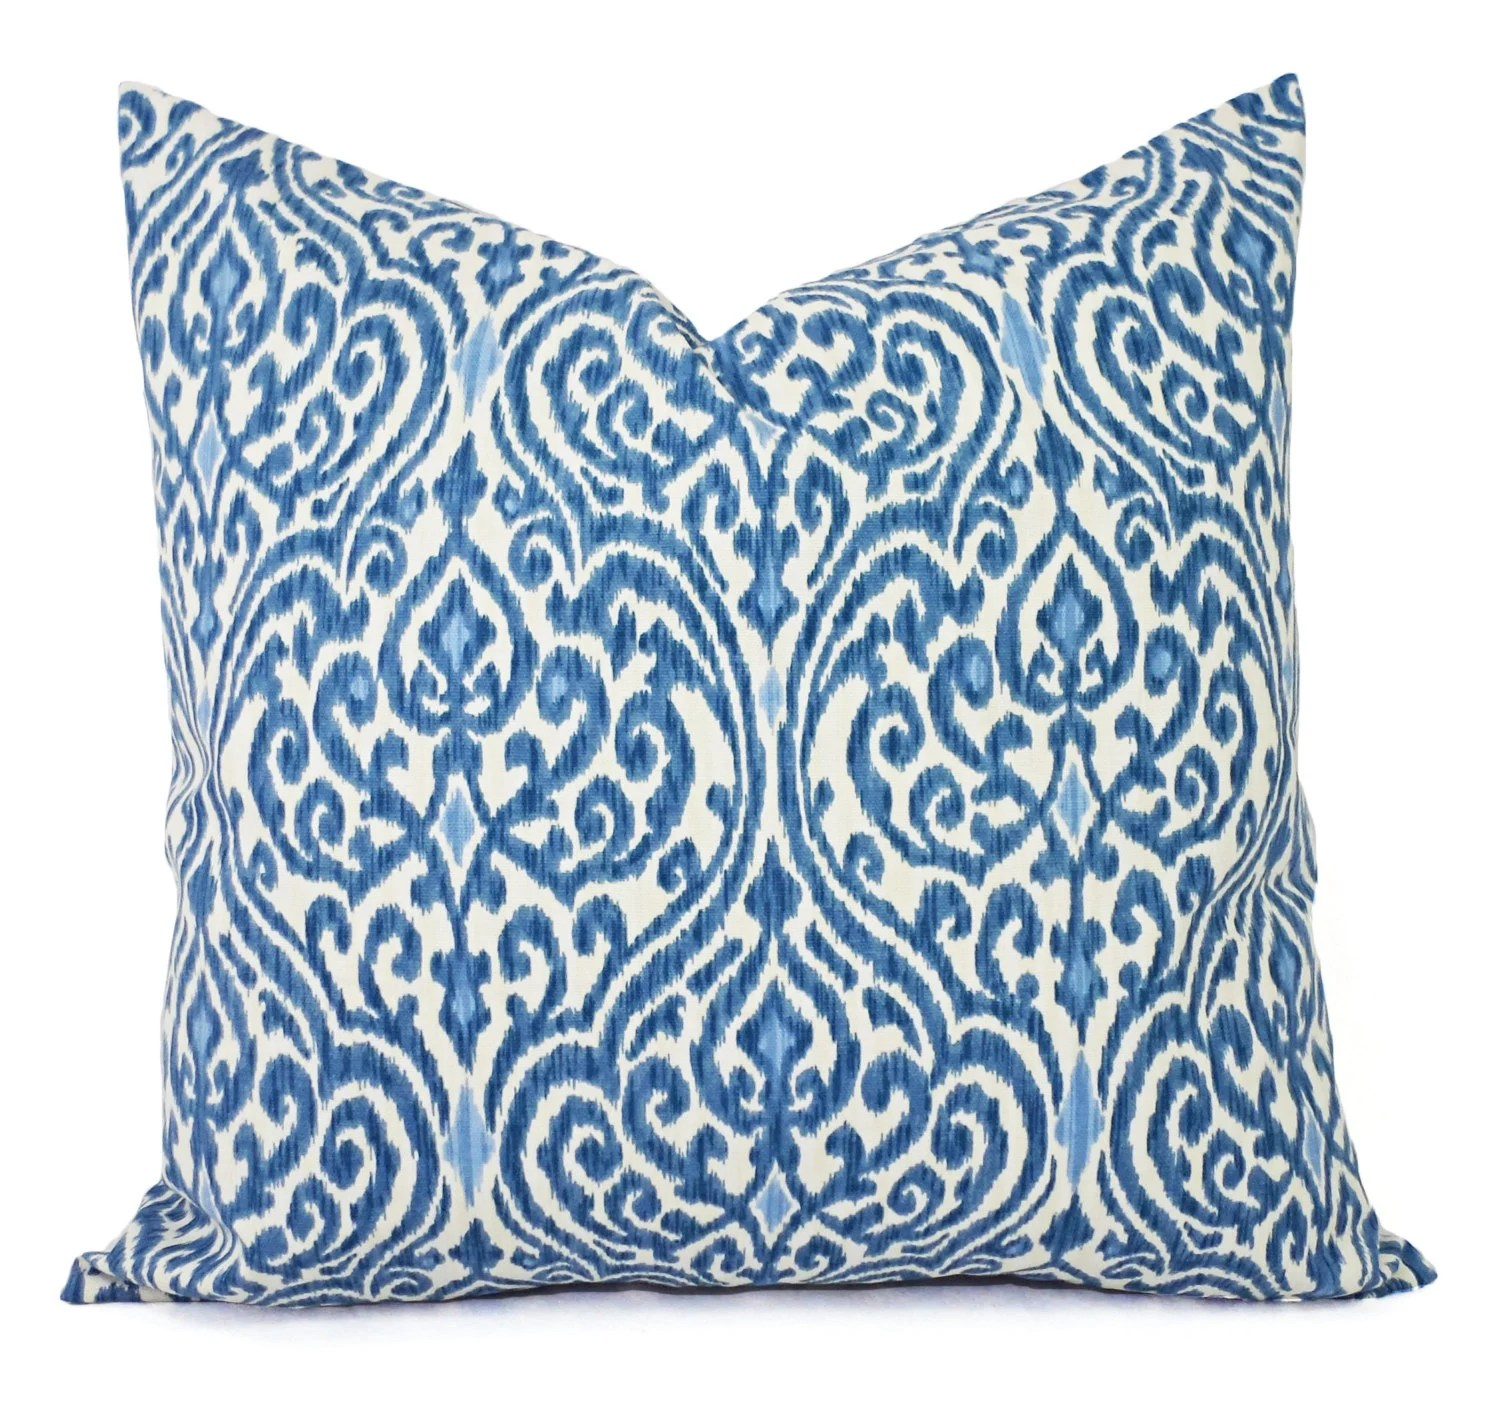 Two Decorative Throw Pillow Covers Blue and Beige Ikat